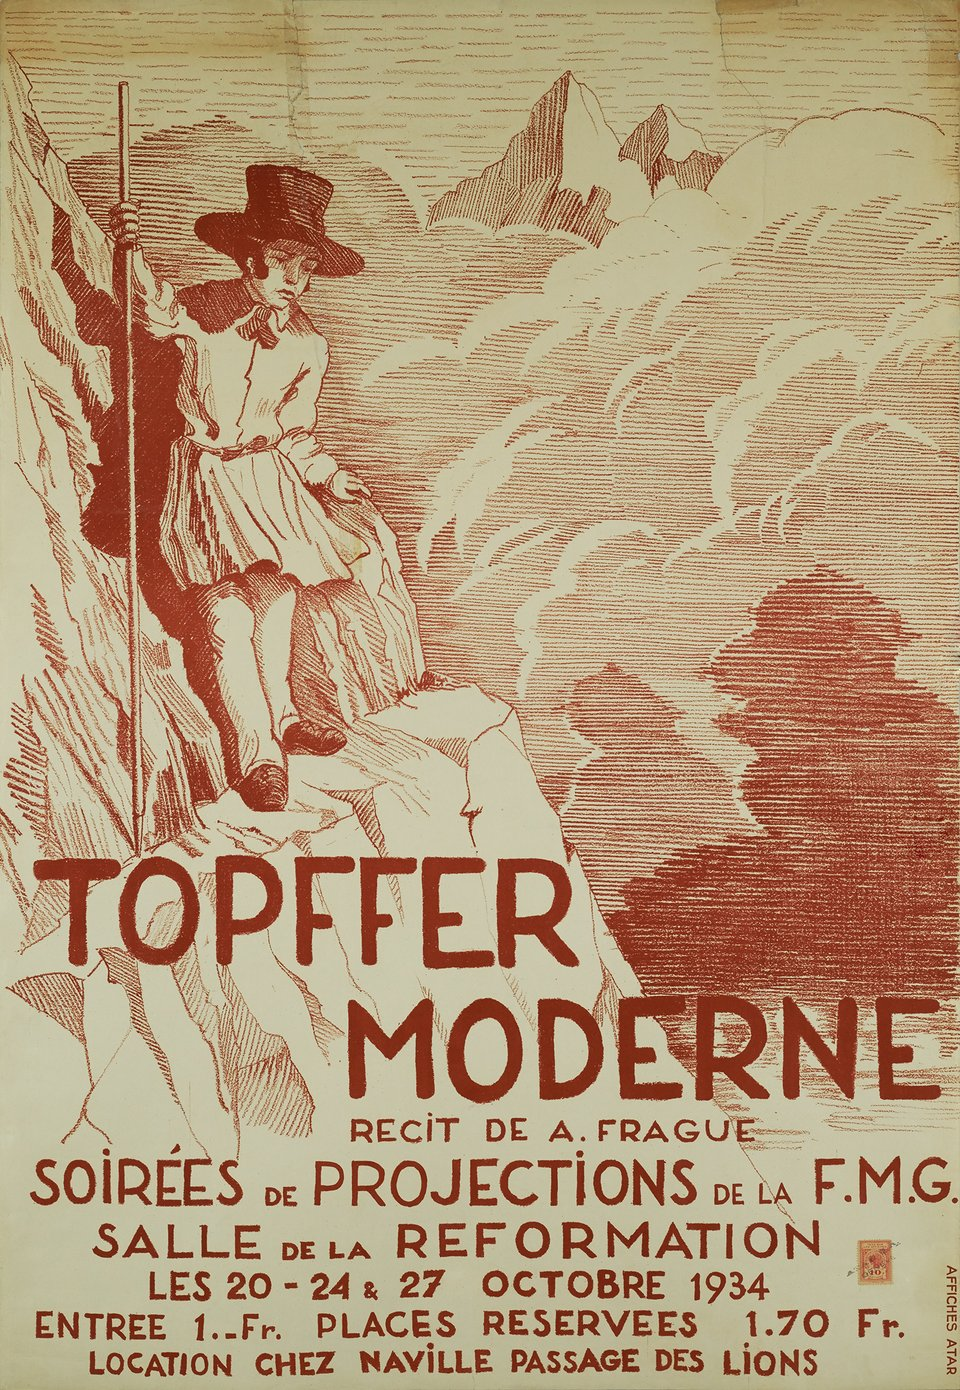 Topffer Moderne – Affiche ancienne – ANONYME – 1934